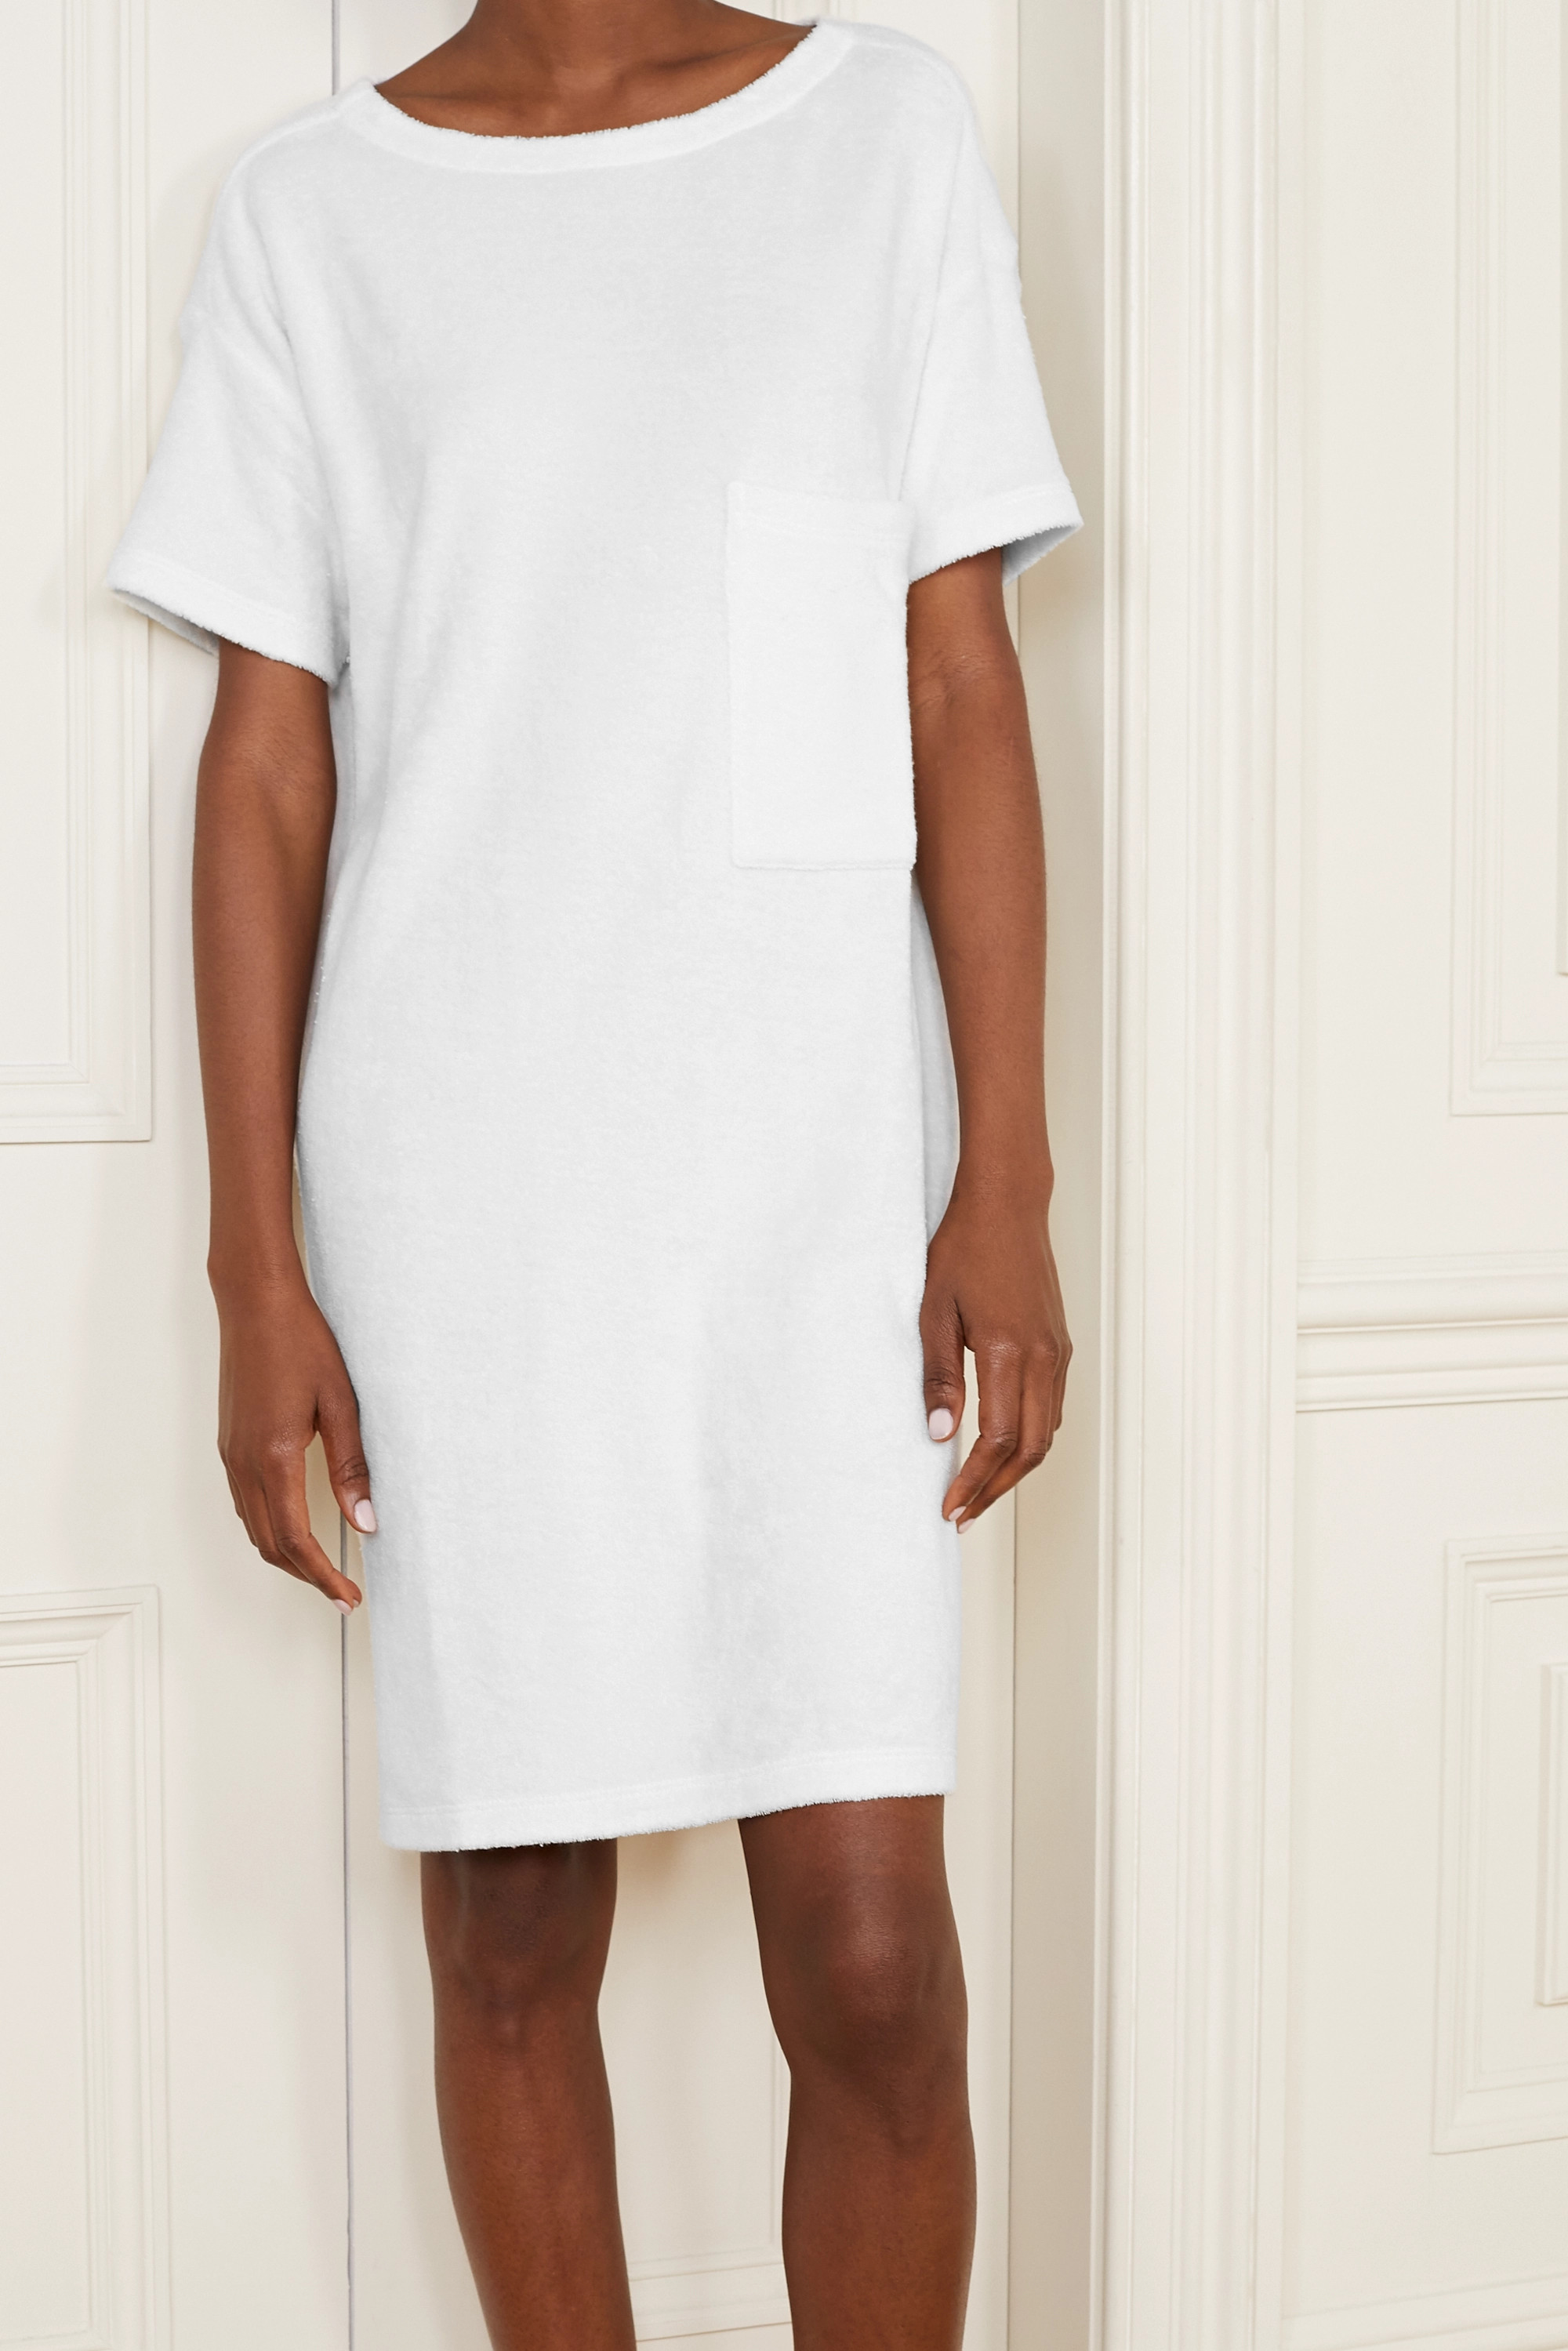 Skin Yael textured cotton-blend terry nightdress